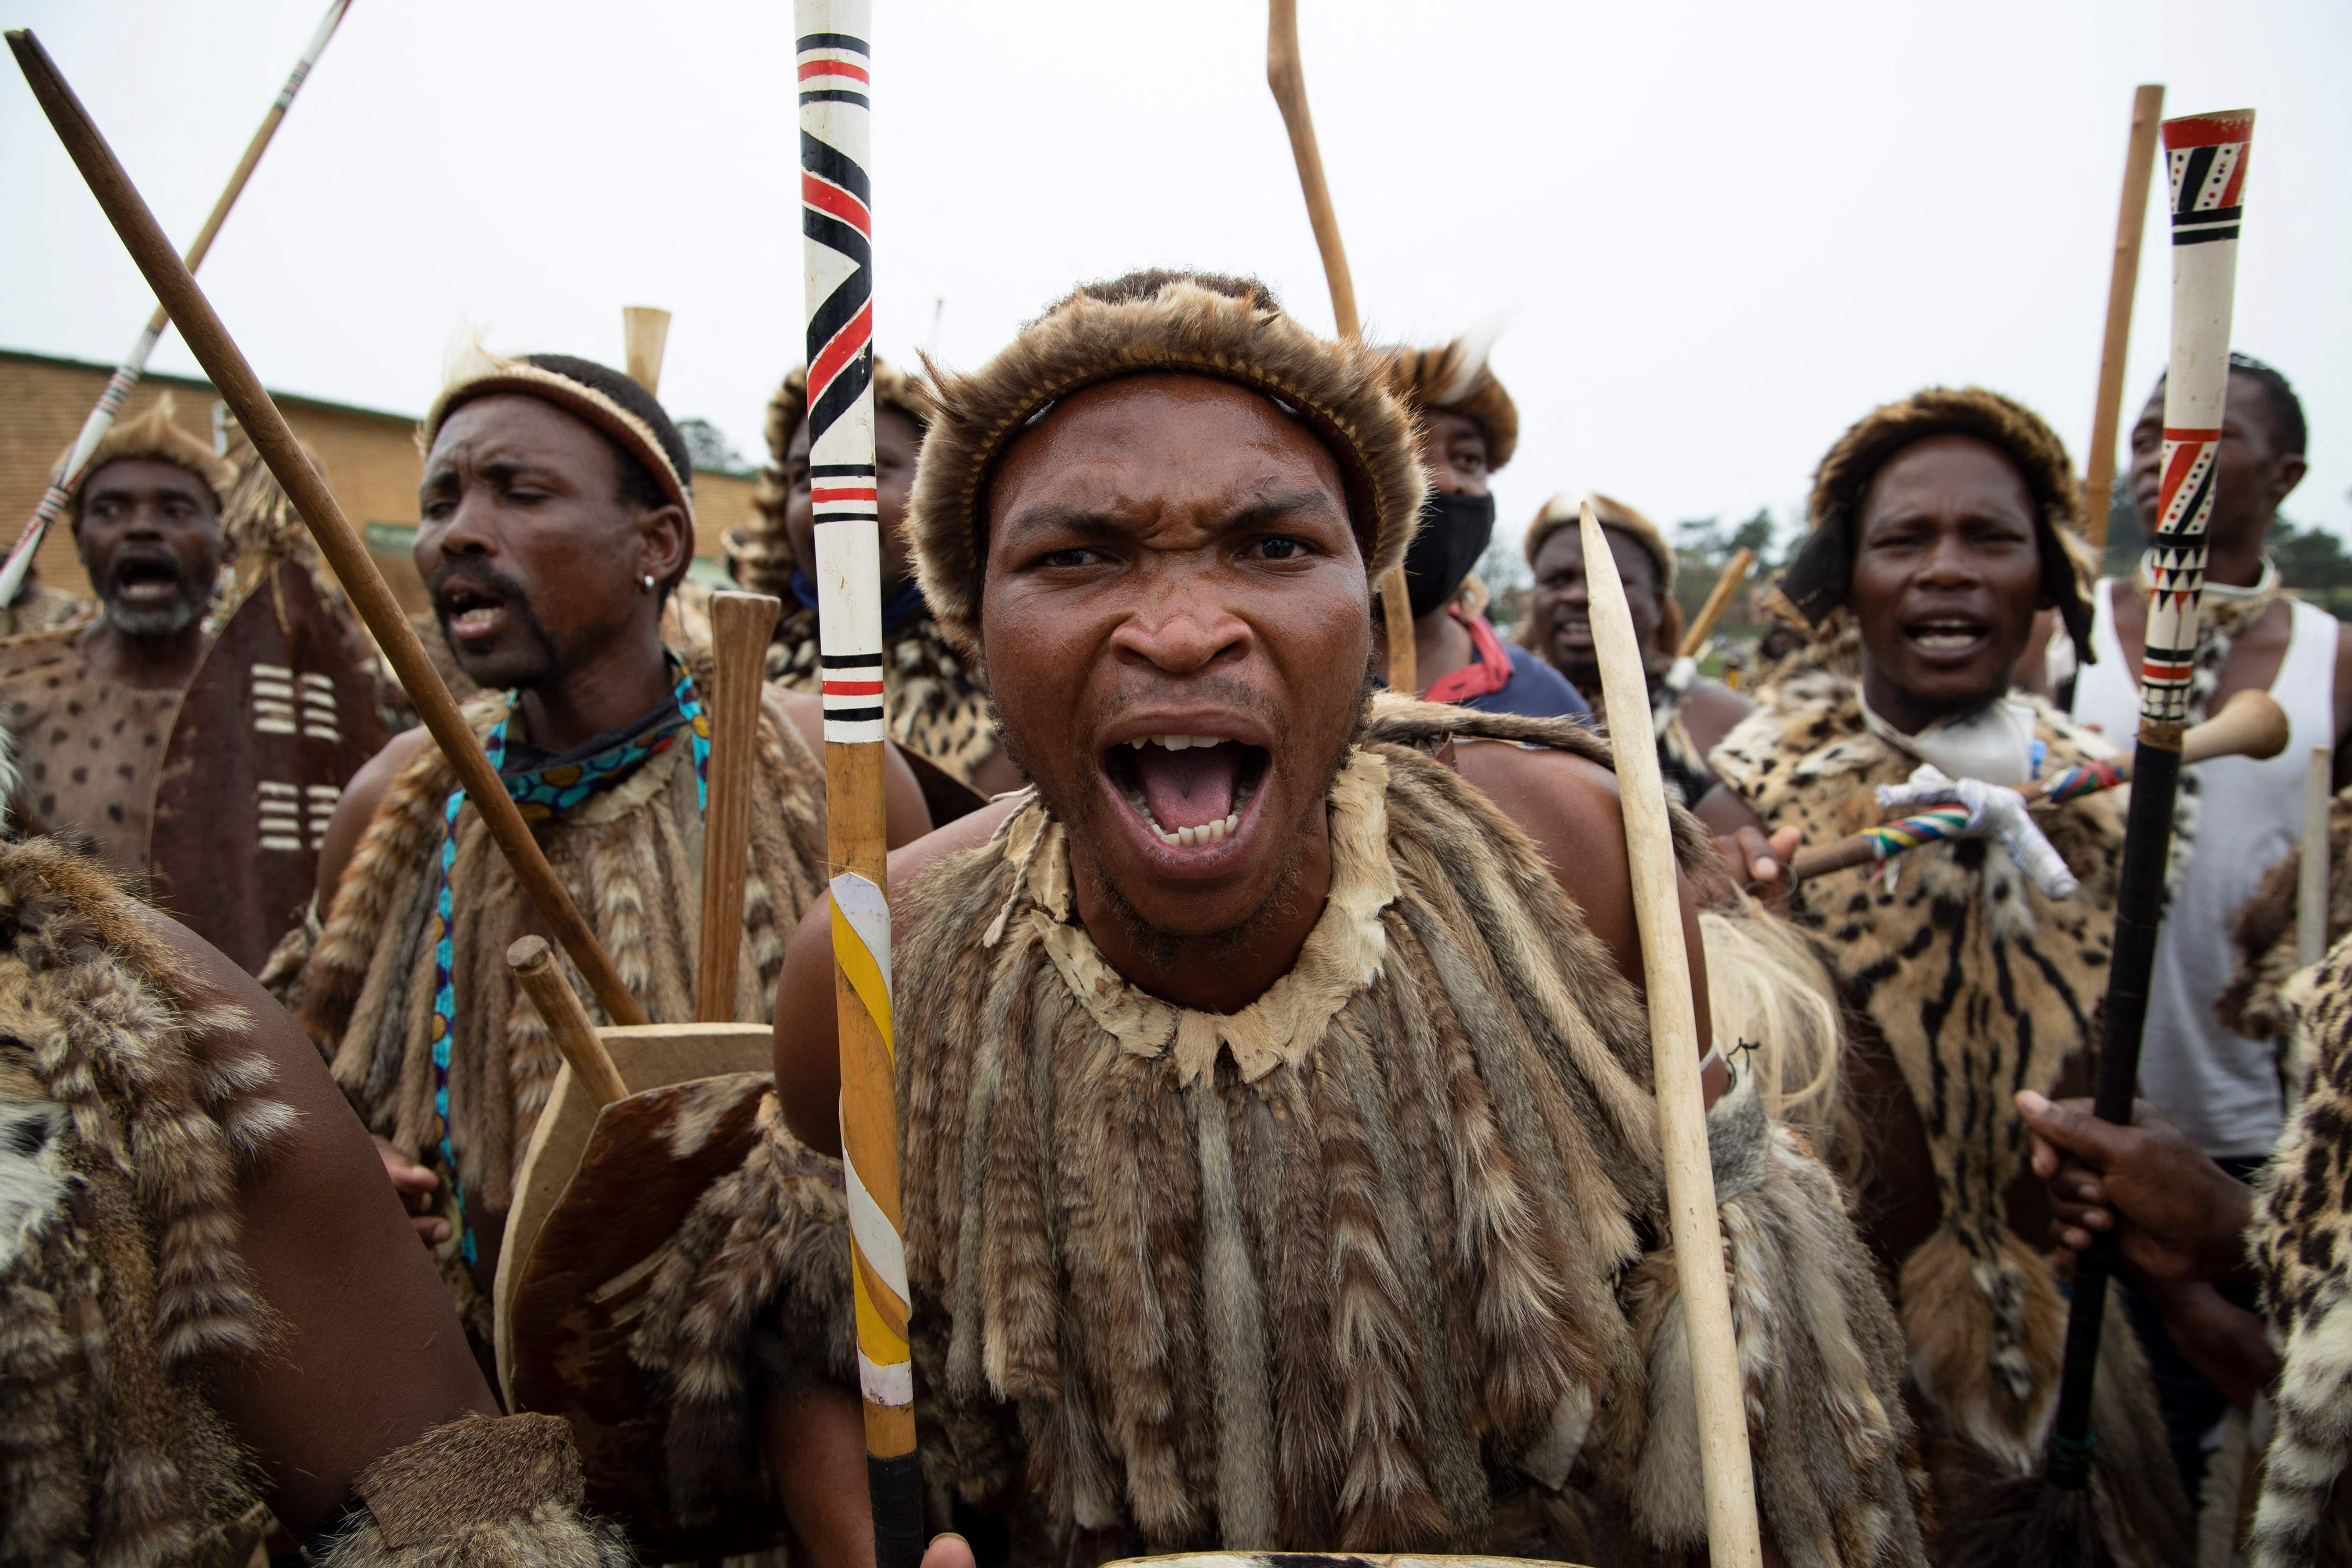 Zulu regiments, also known as amaButho, make their way to the mortuary to receive the body of King Goodwill Zwelithini from in Nongoma, KwaZulu Natal, South Africa, March 17, 2021. (AFP Photo)